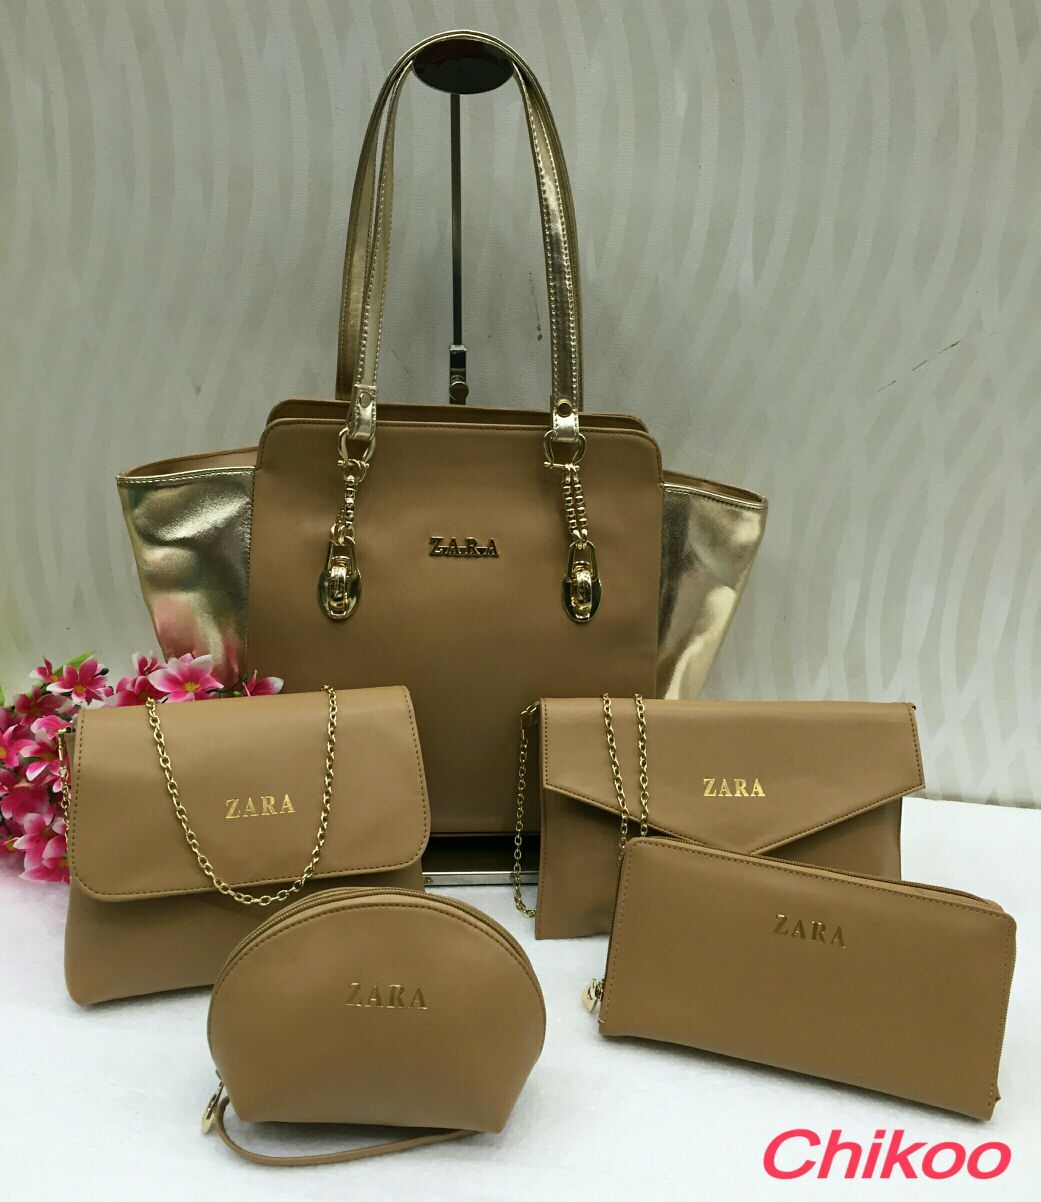 Zara 5 Pcs Combo Ping Us On Our Official No 08447679339 For More Details Order Or To Add In Broadcast Rear Are Welcome